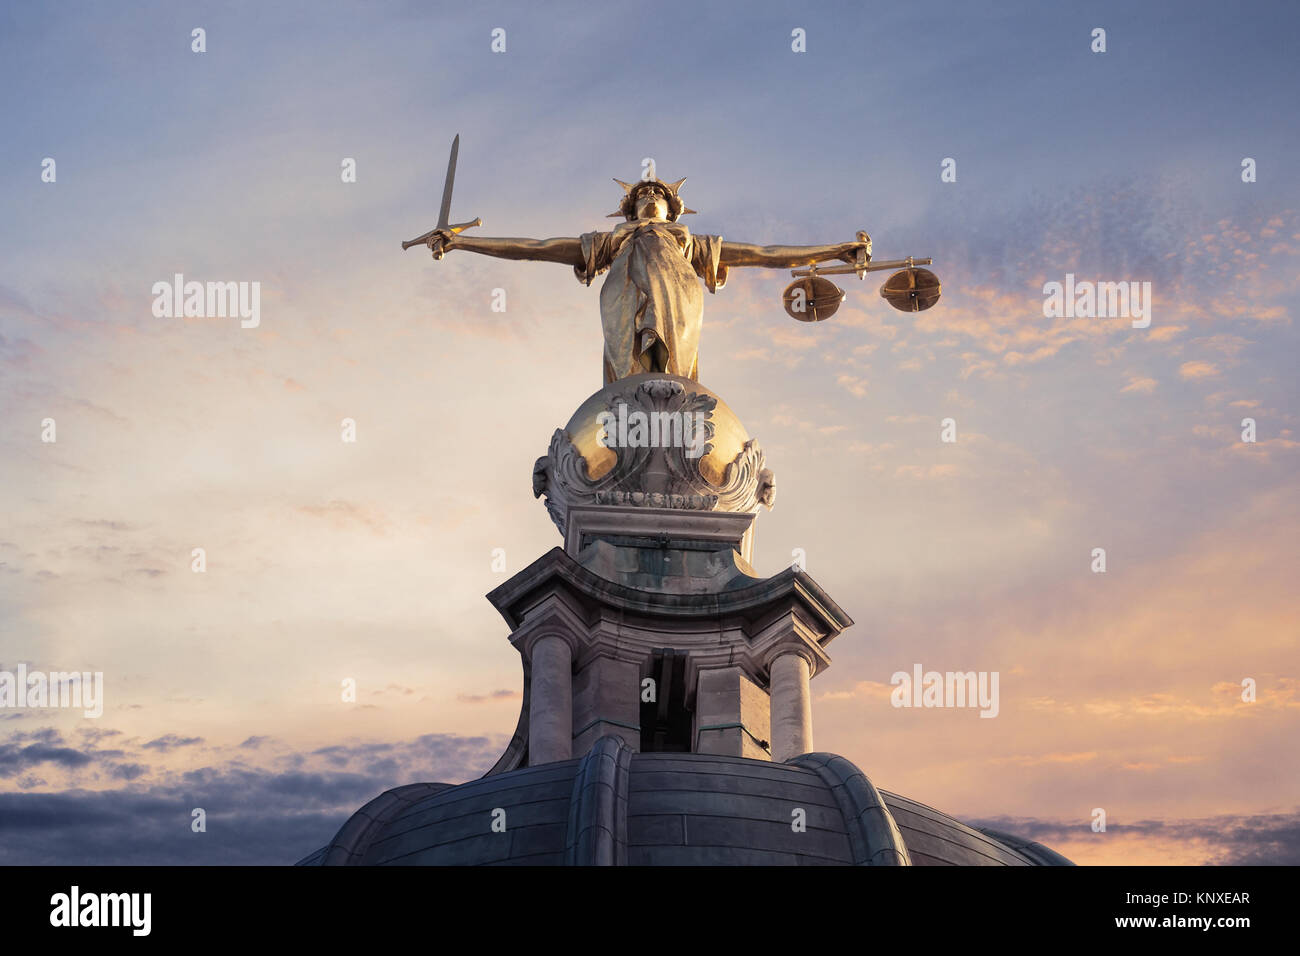 Gold Lady Justice Statue on the top of the Old Bailey in London, England, with a sunset sky in the background - Stock Image